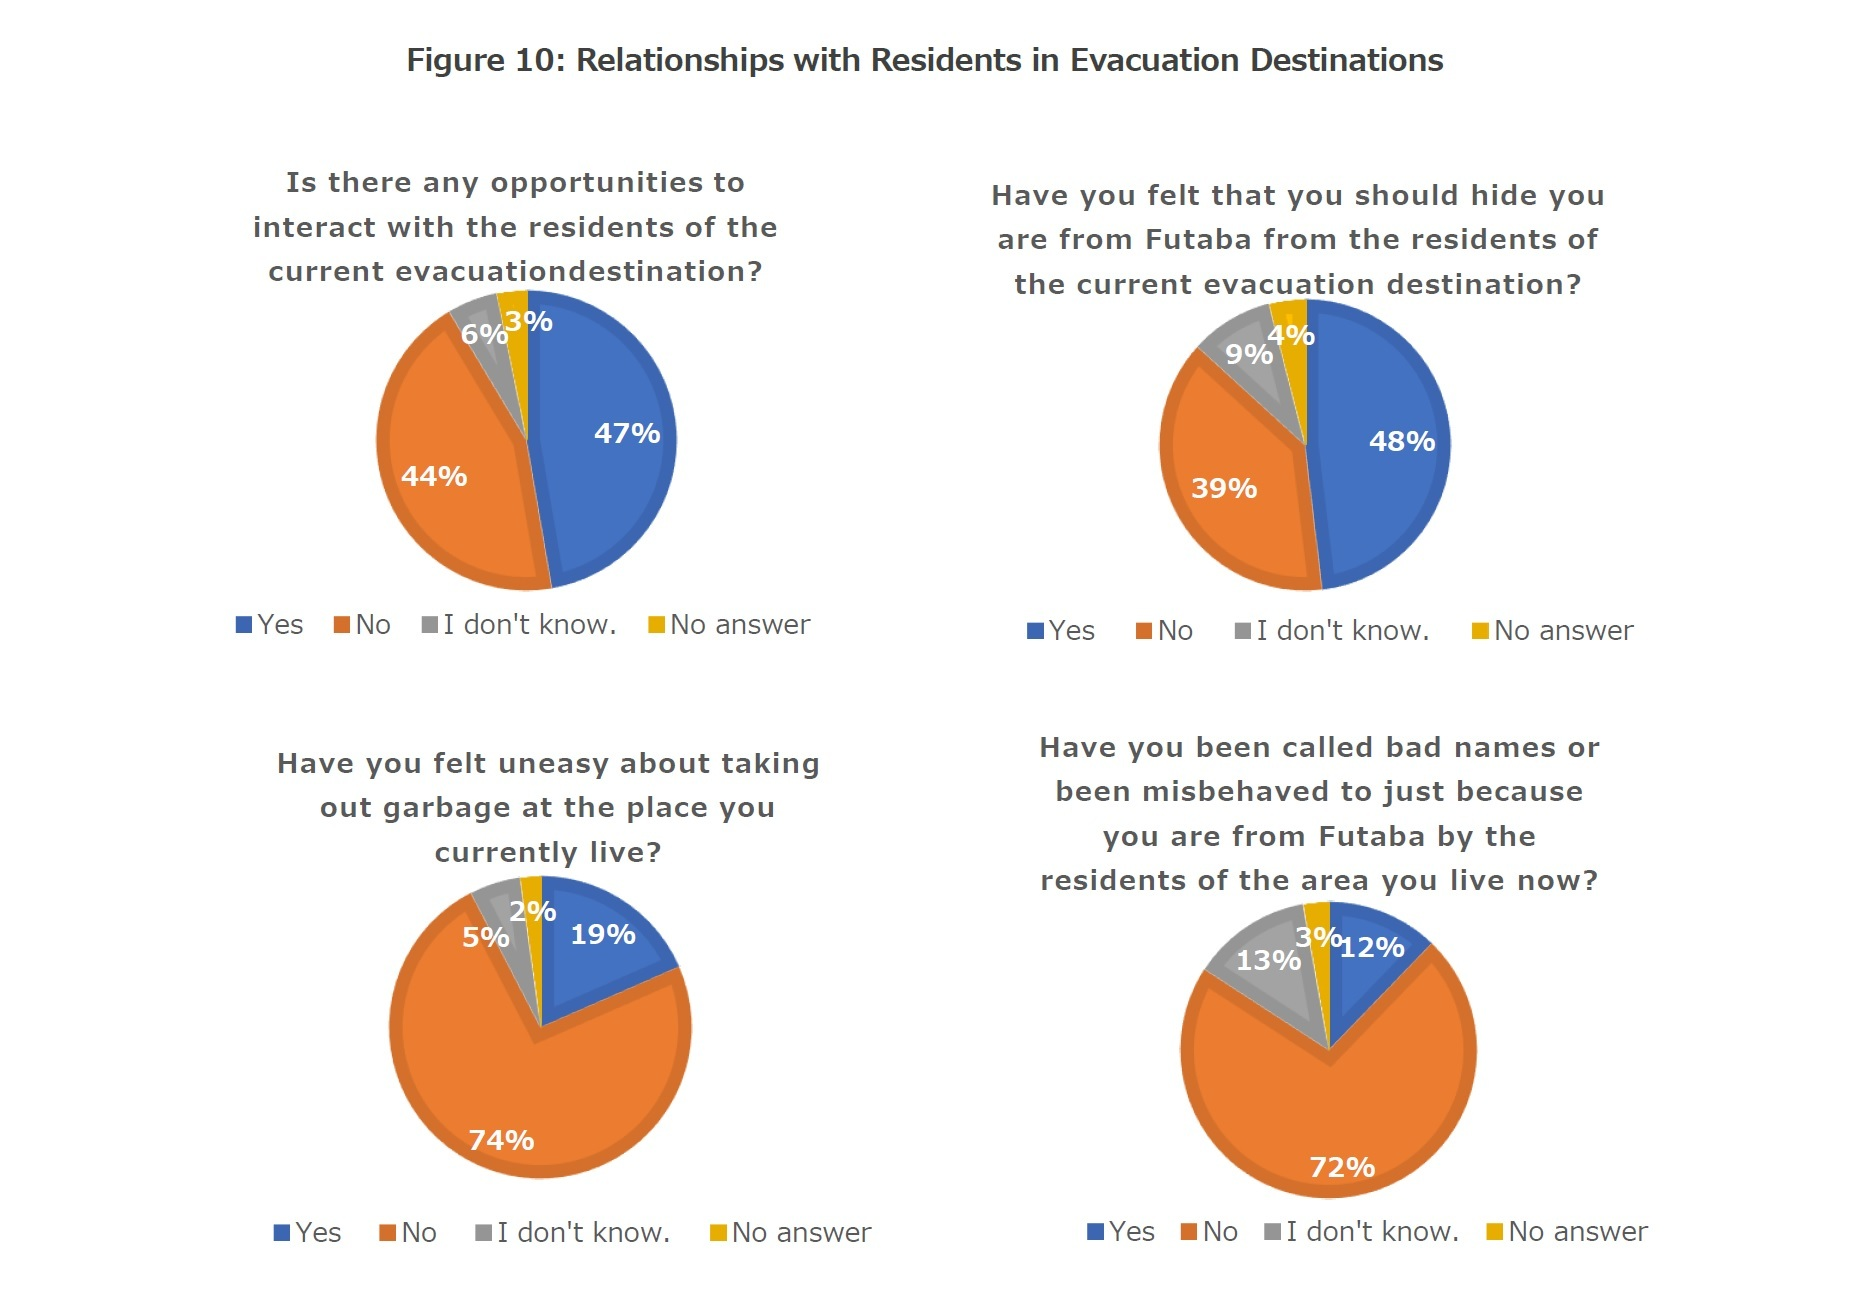 Figure 10: Relationships with Residents in Evacuation Destinations